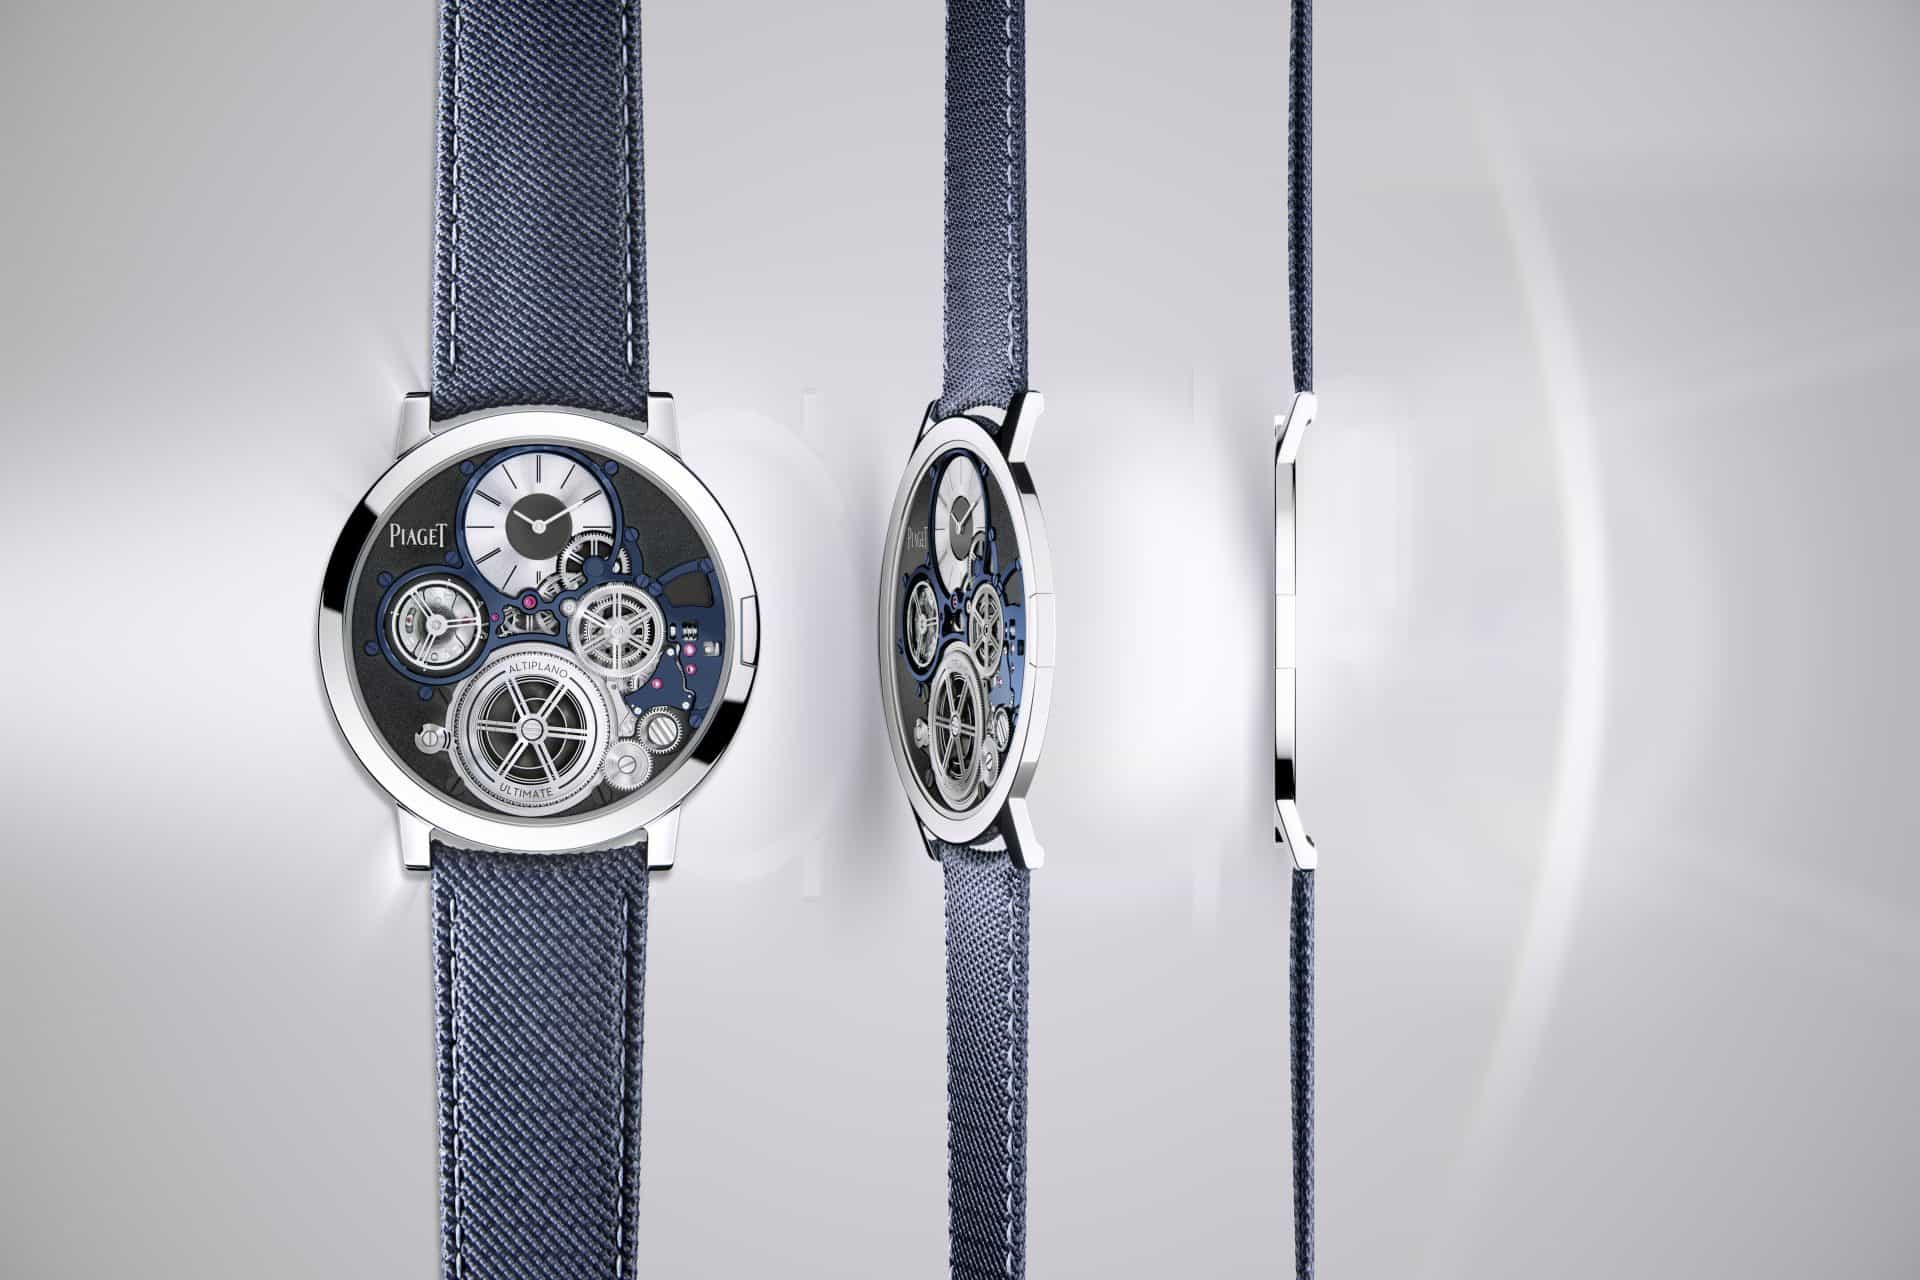 Die blaue Version der Piaget Altiplano Ultimate Concept